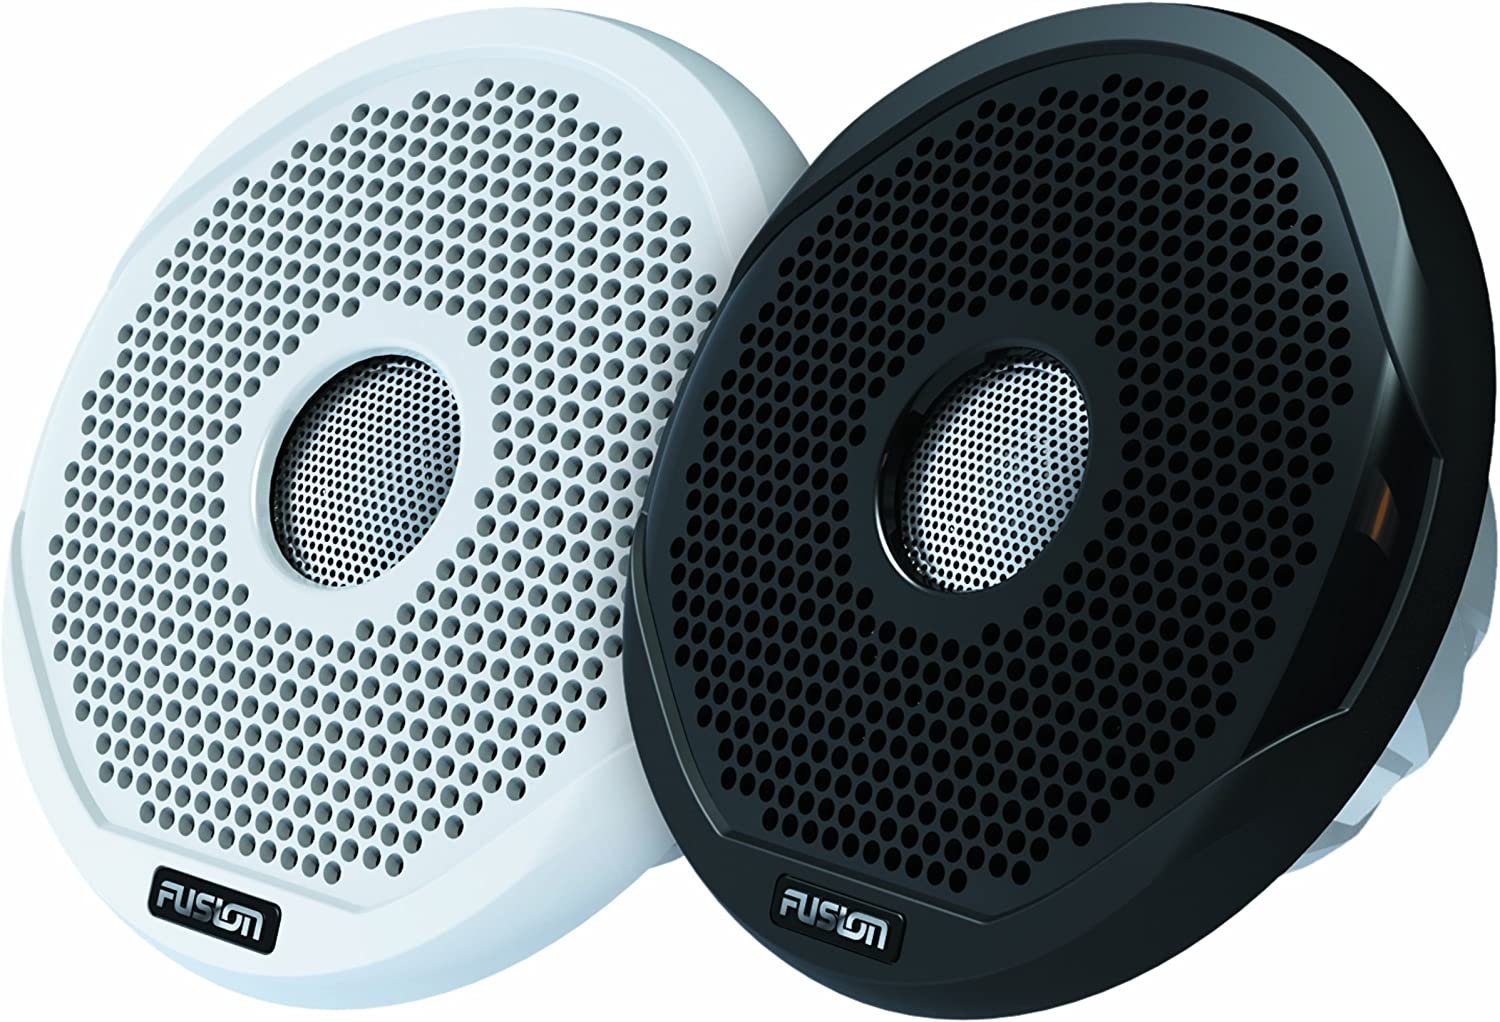 Fusion Msfr7021 Marine 7  2way 240w Speakers Boat Audio Black & White Grilles